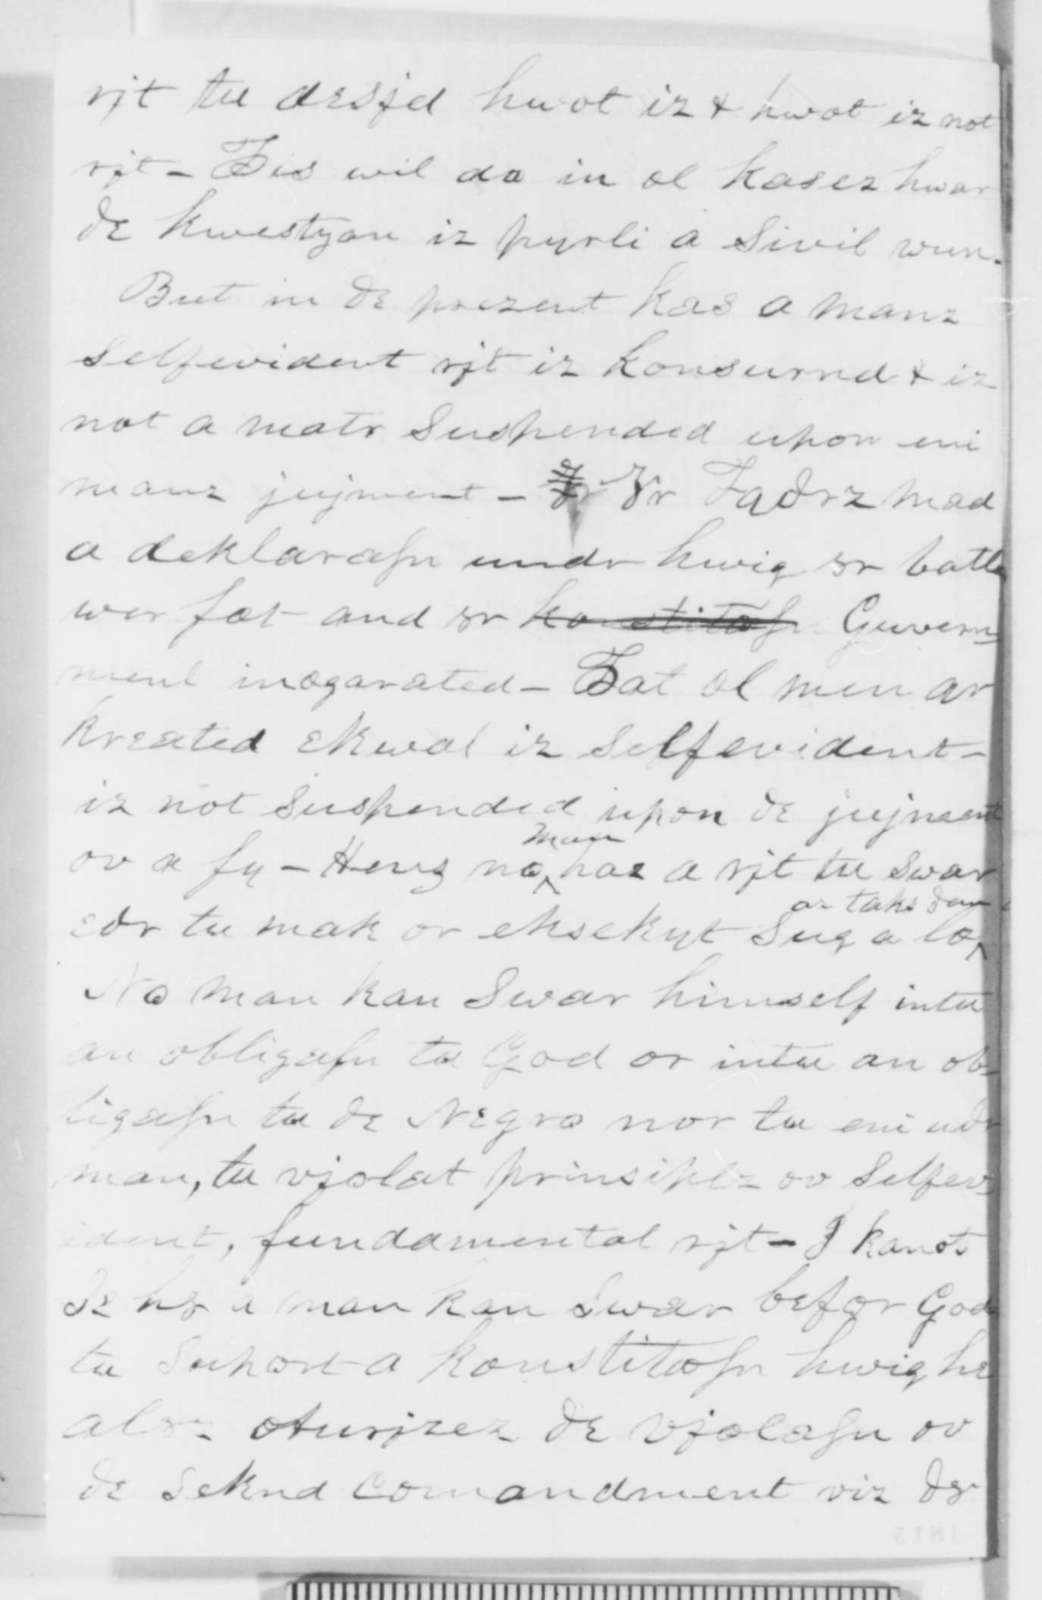 A  B  Pikard to Abraham Lincoln, Saturday, August 06, 1859